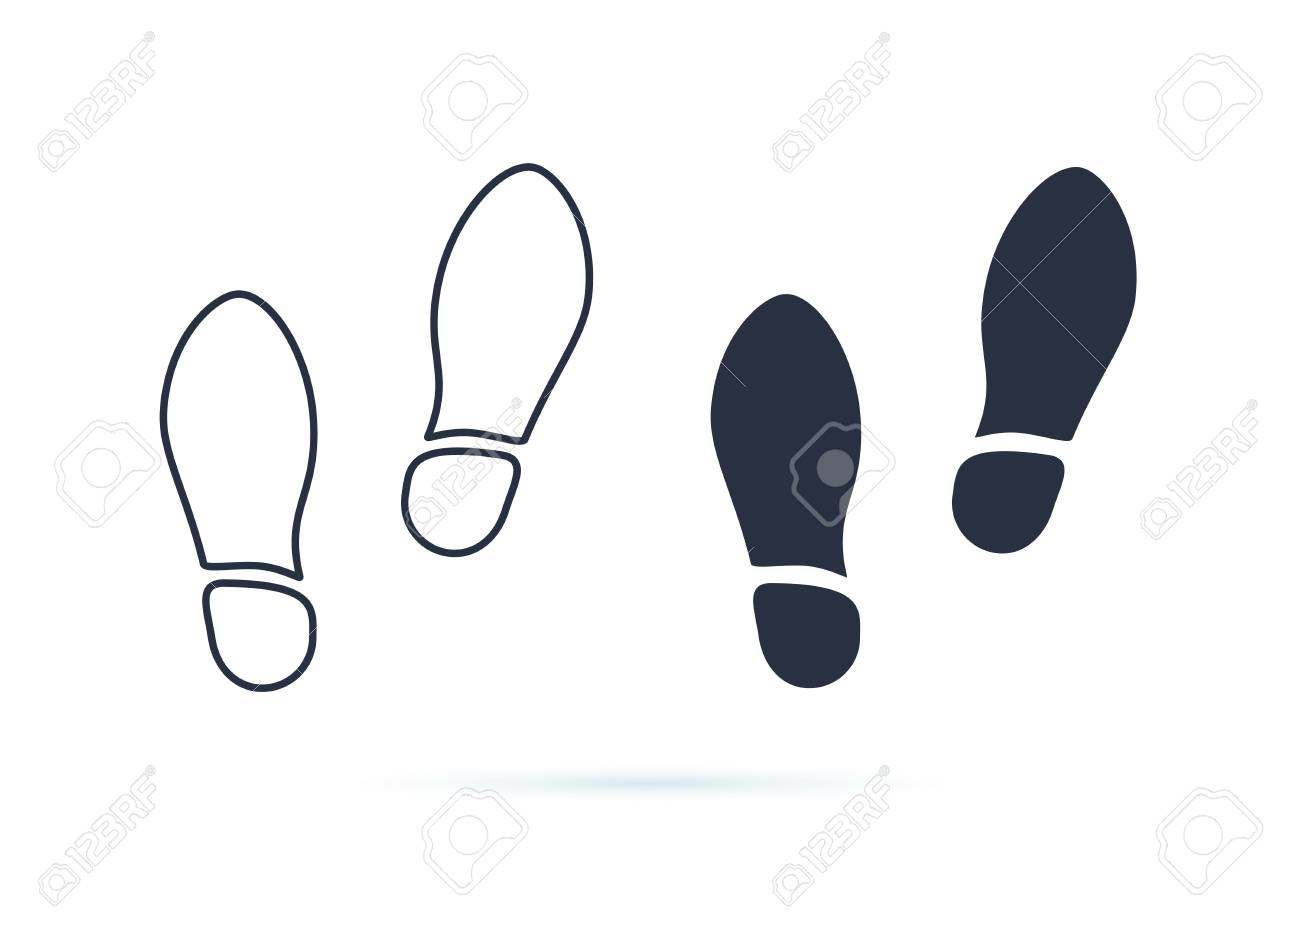 Shoes Footsteps icon vector. Pair of shoes on white background. New sneakers or boots concept symbol. Top view, flat icon. Linear and solid icons set for footwear store. Walking healthcare life - 125945289